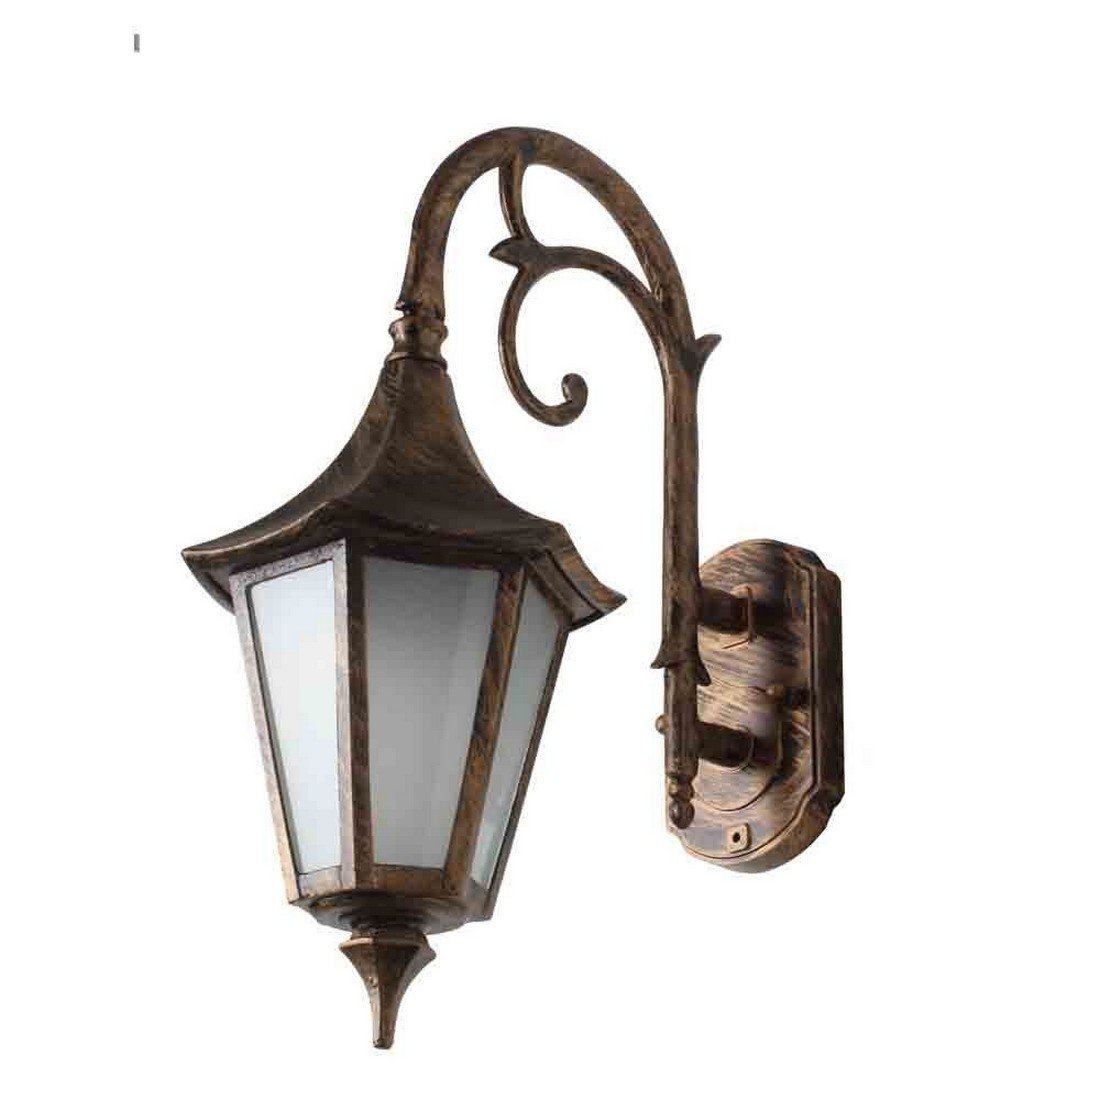 Superscape Outdoor Lighting Wl1857 Traditional Exterior Wall Lights Amazon In Home Kitchen